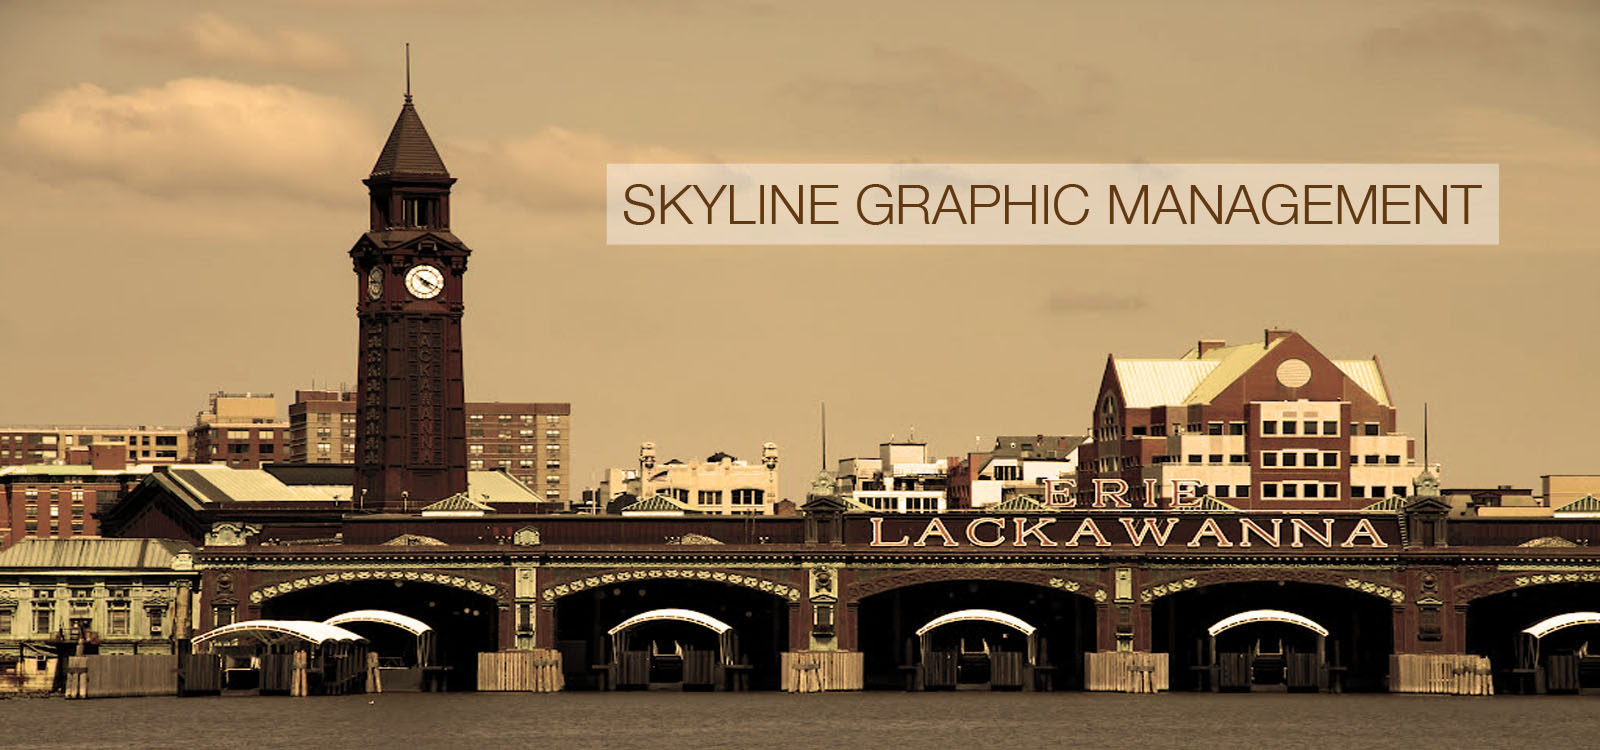 Skyline Graphic Management